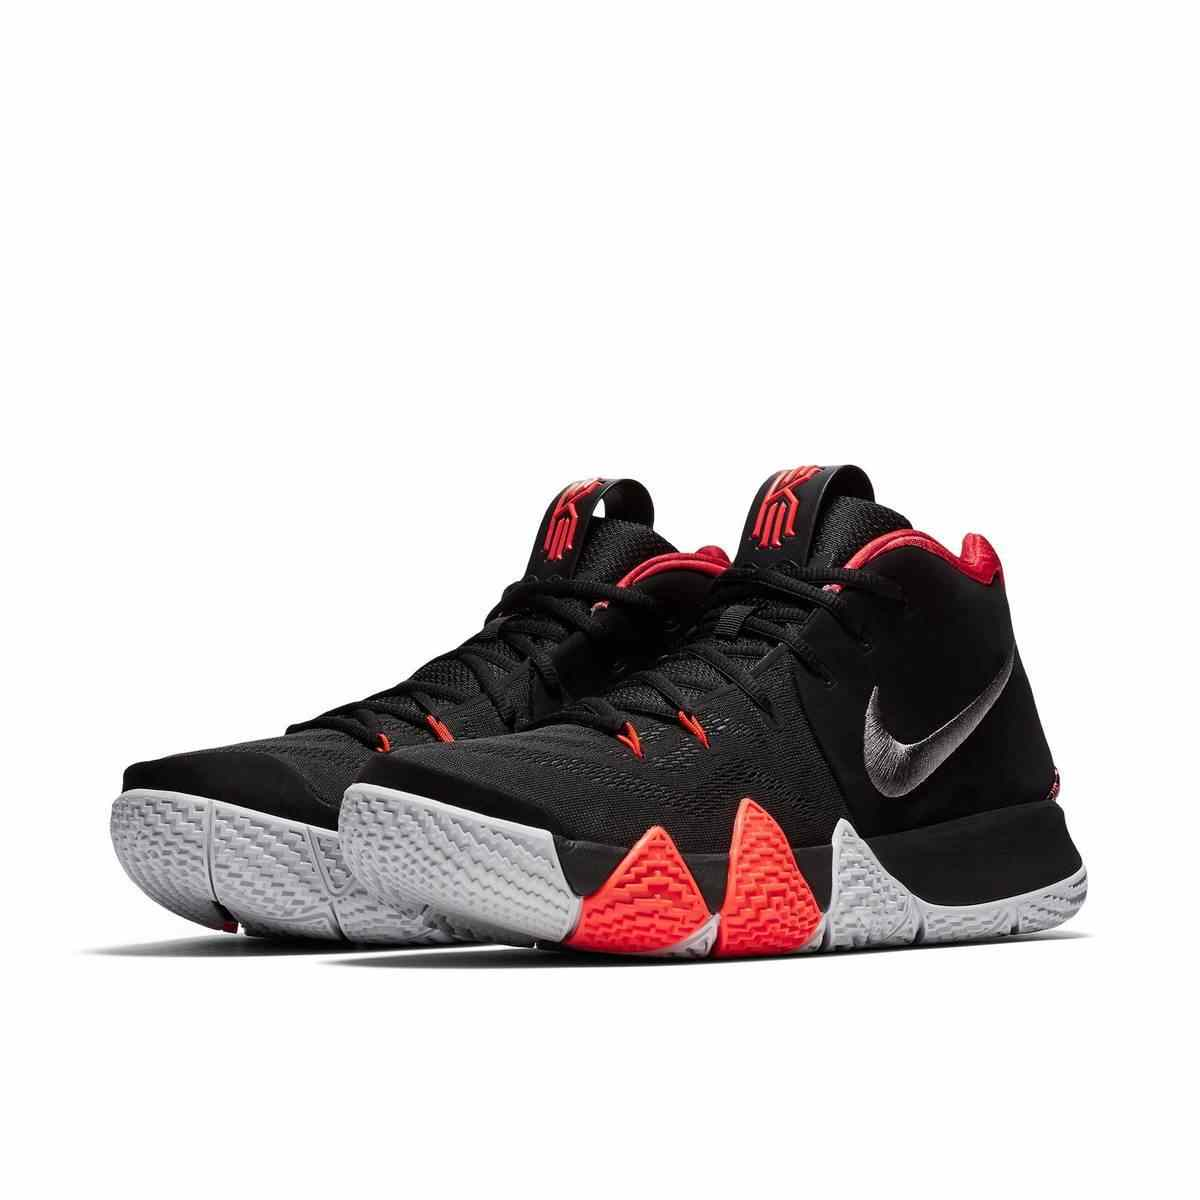 new concept 1741b aae66 NIKE KYRIE 4 EP Original New Arrival Original Men Basketball Shoes  Comfortable Breathable Hiking Sport Outdoor Sneakers#943807